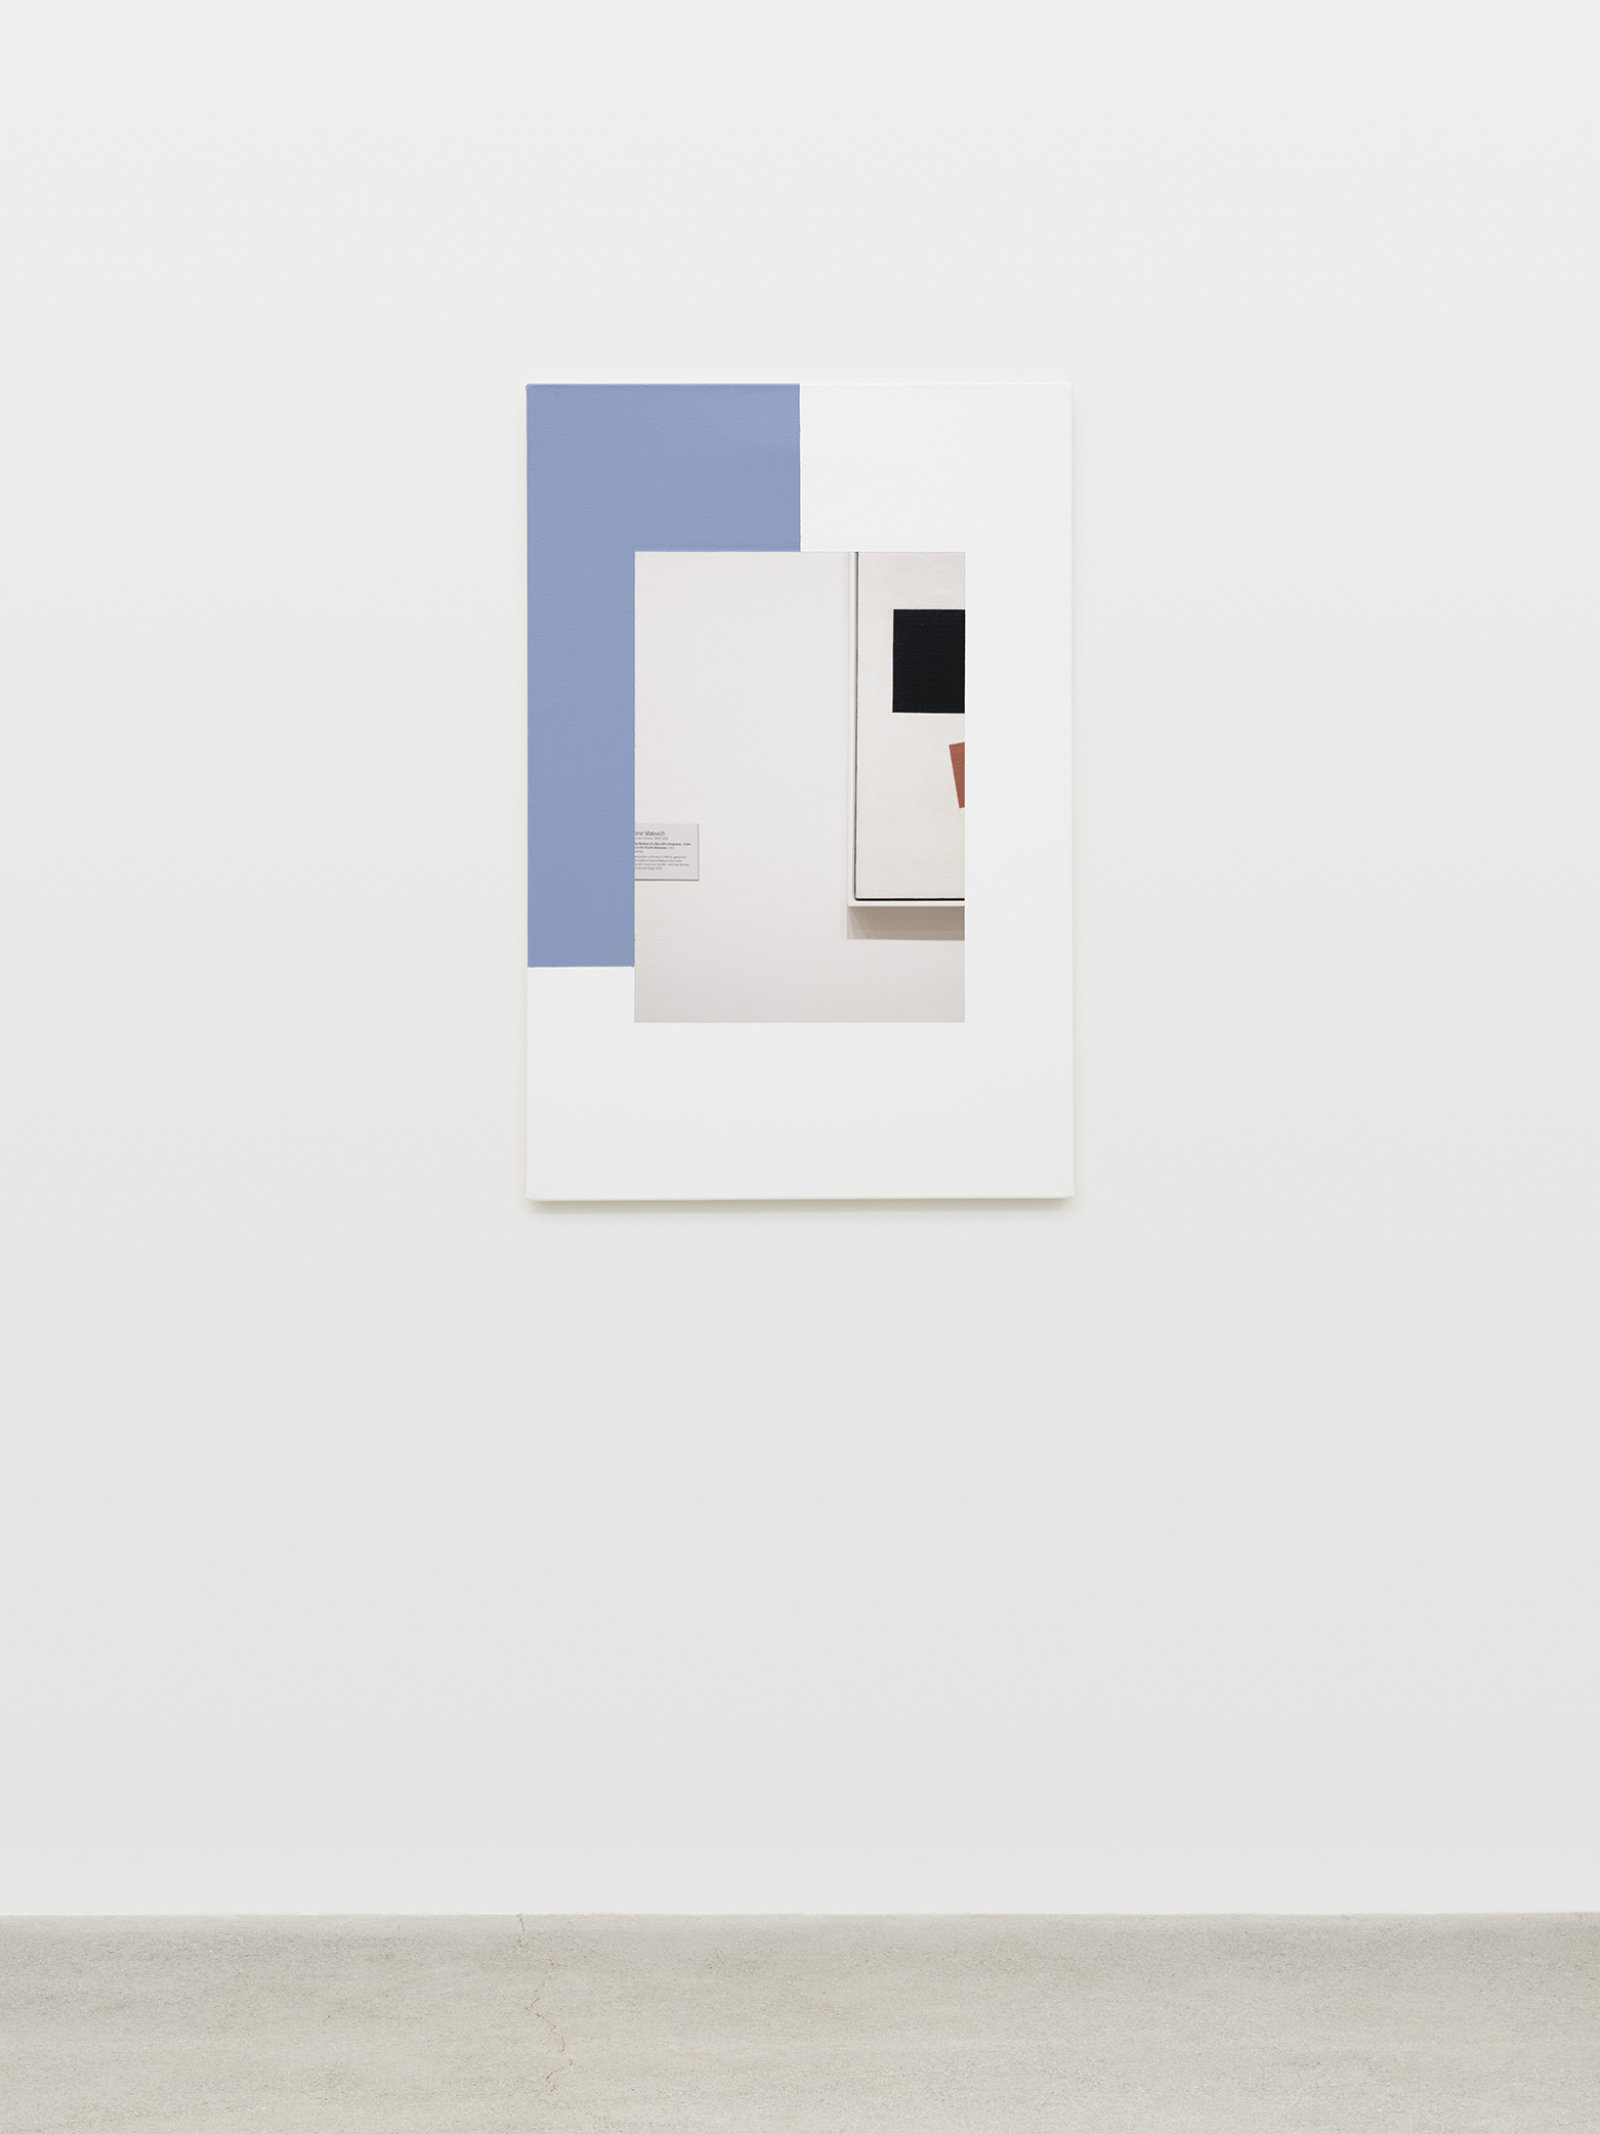 Ian Wallace, Abstract Composition (with Malevich), 2011, photolaminate with acrylic on canvas, 36 x 24 in. (91 x 61 cm)